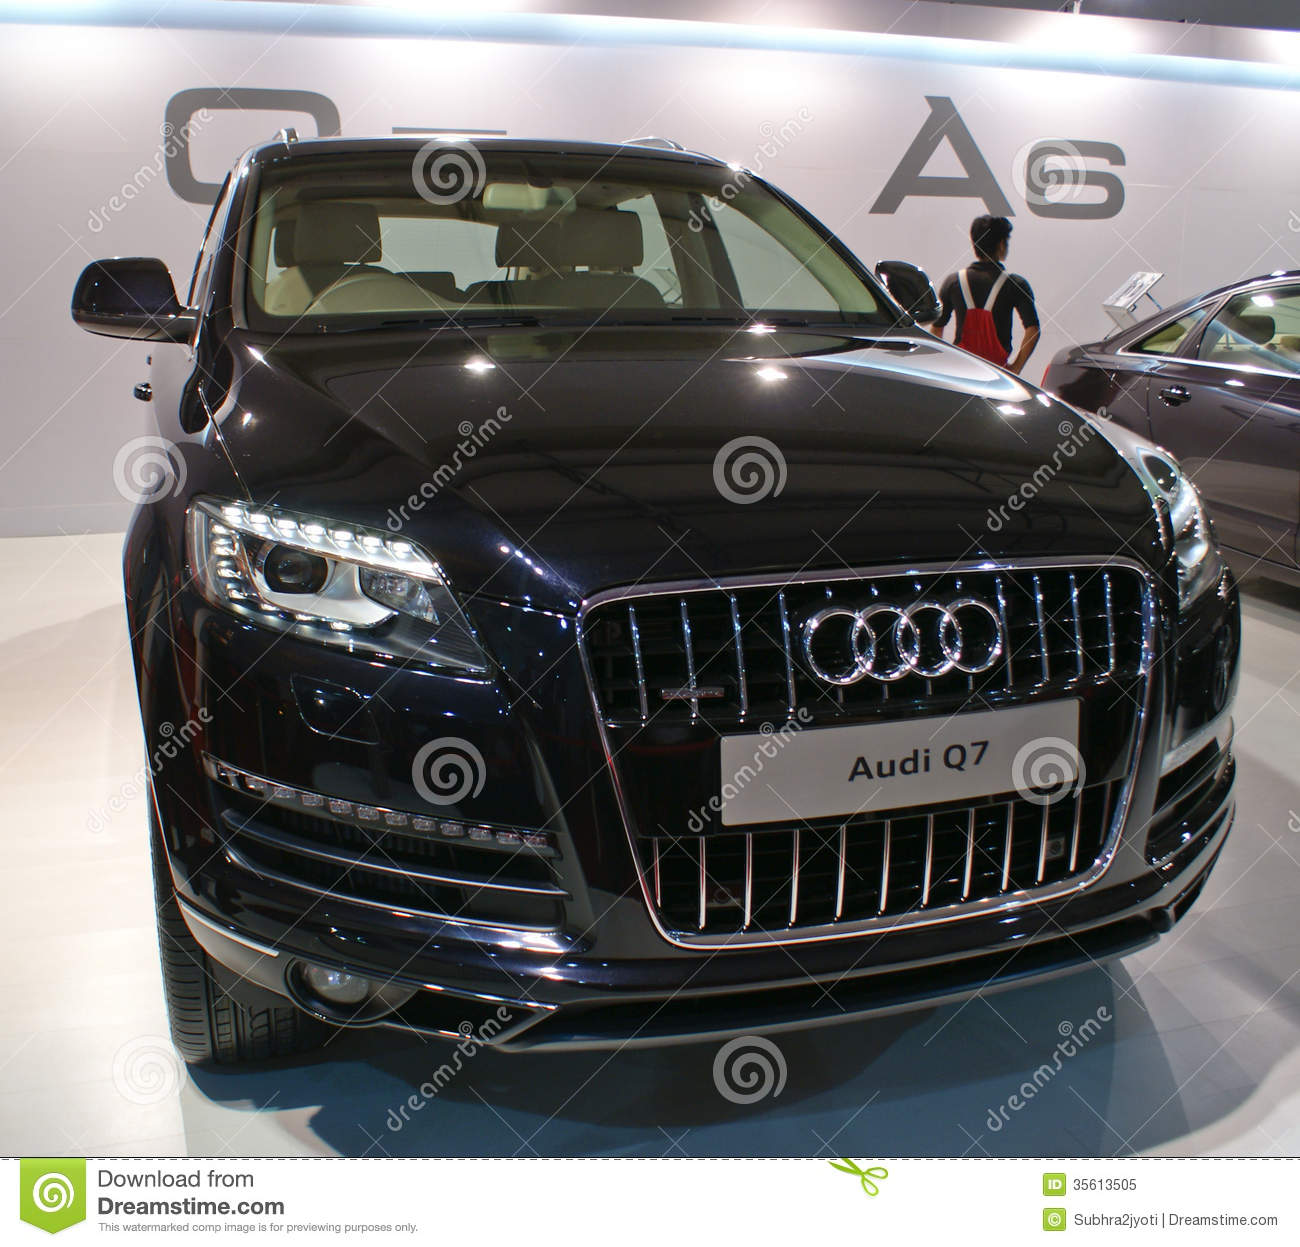 An Audi Q7 Luxury SUV On Display In Autocar Performance